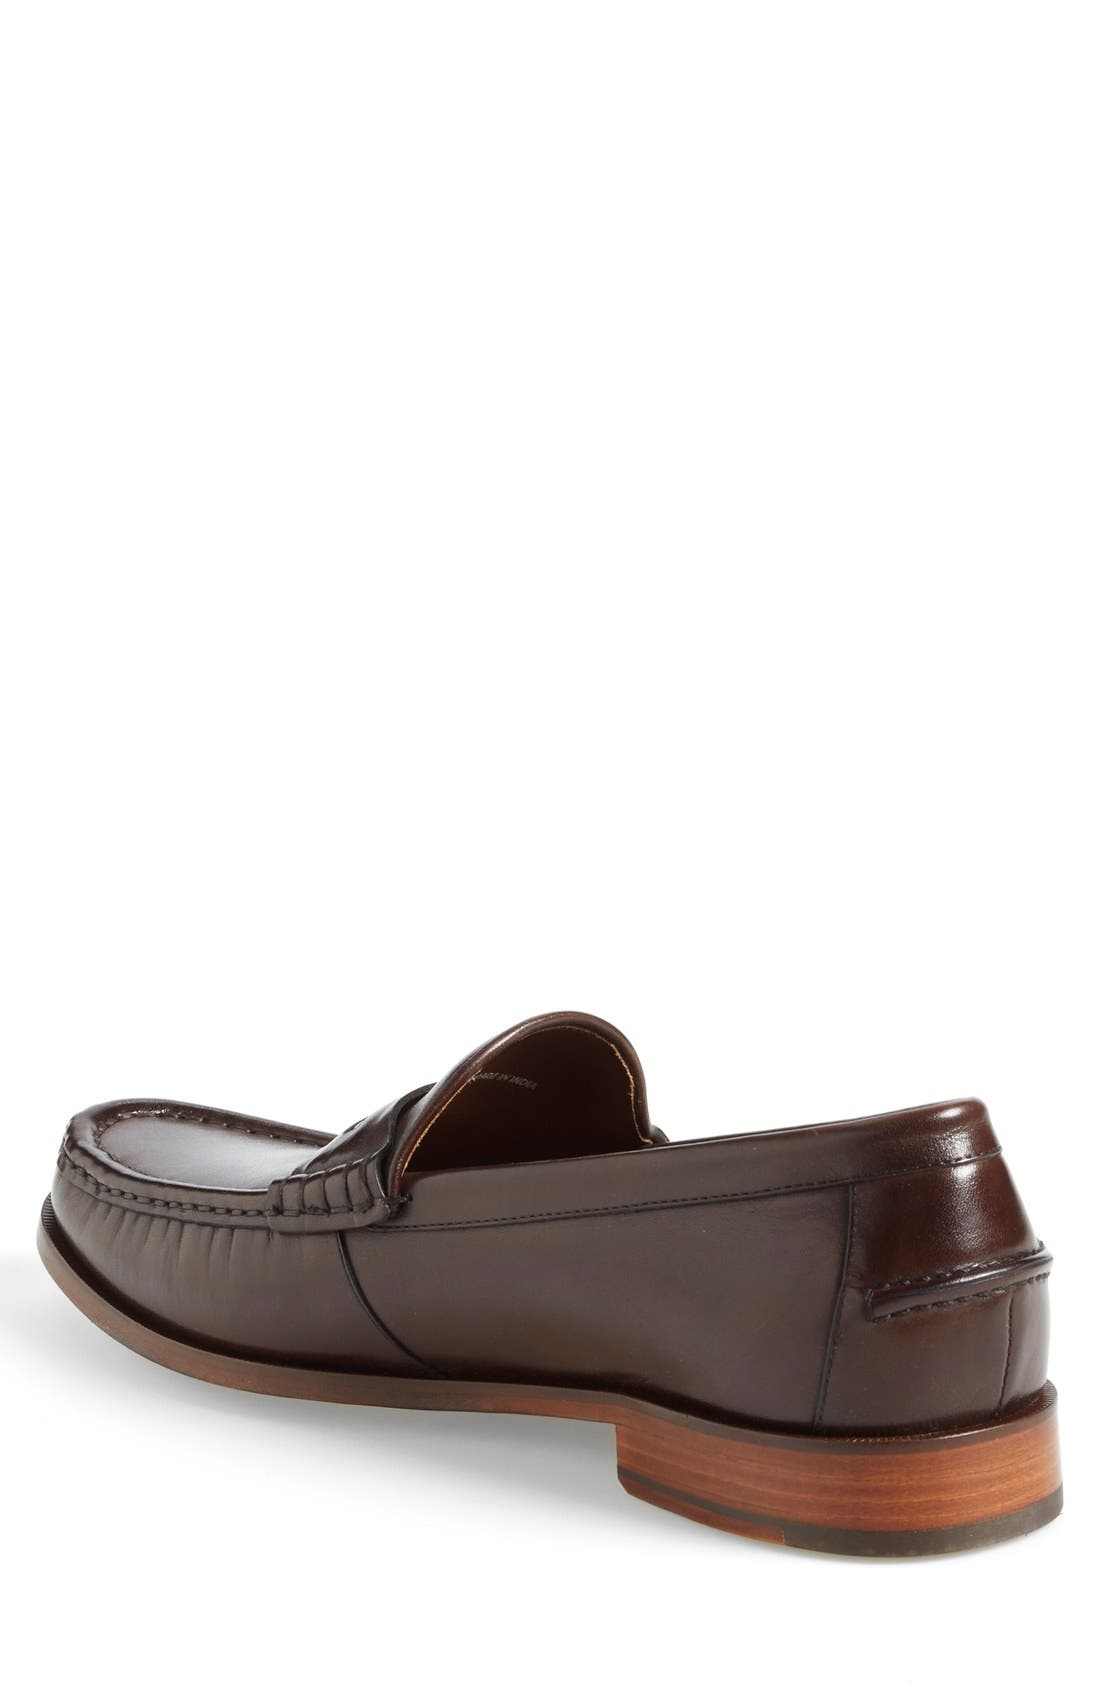 'Pinch Gotham' Penny Loafer,                             Alternate thumbnail 5, color,